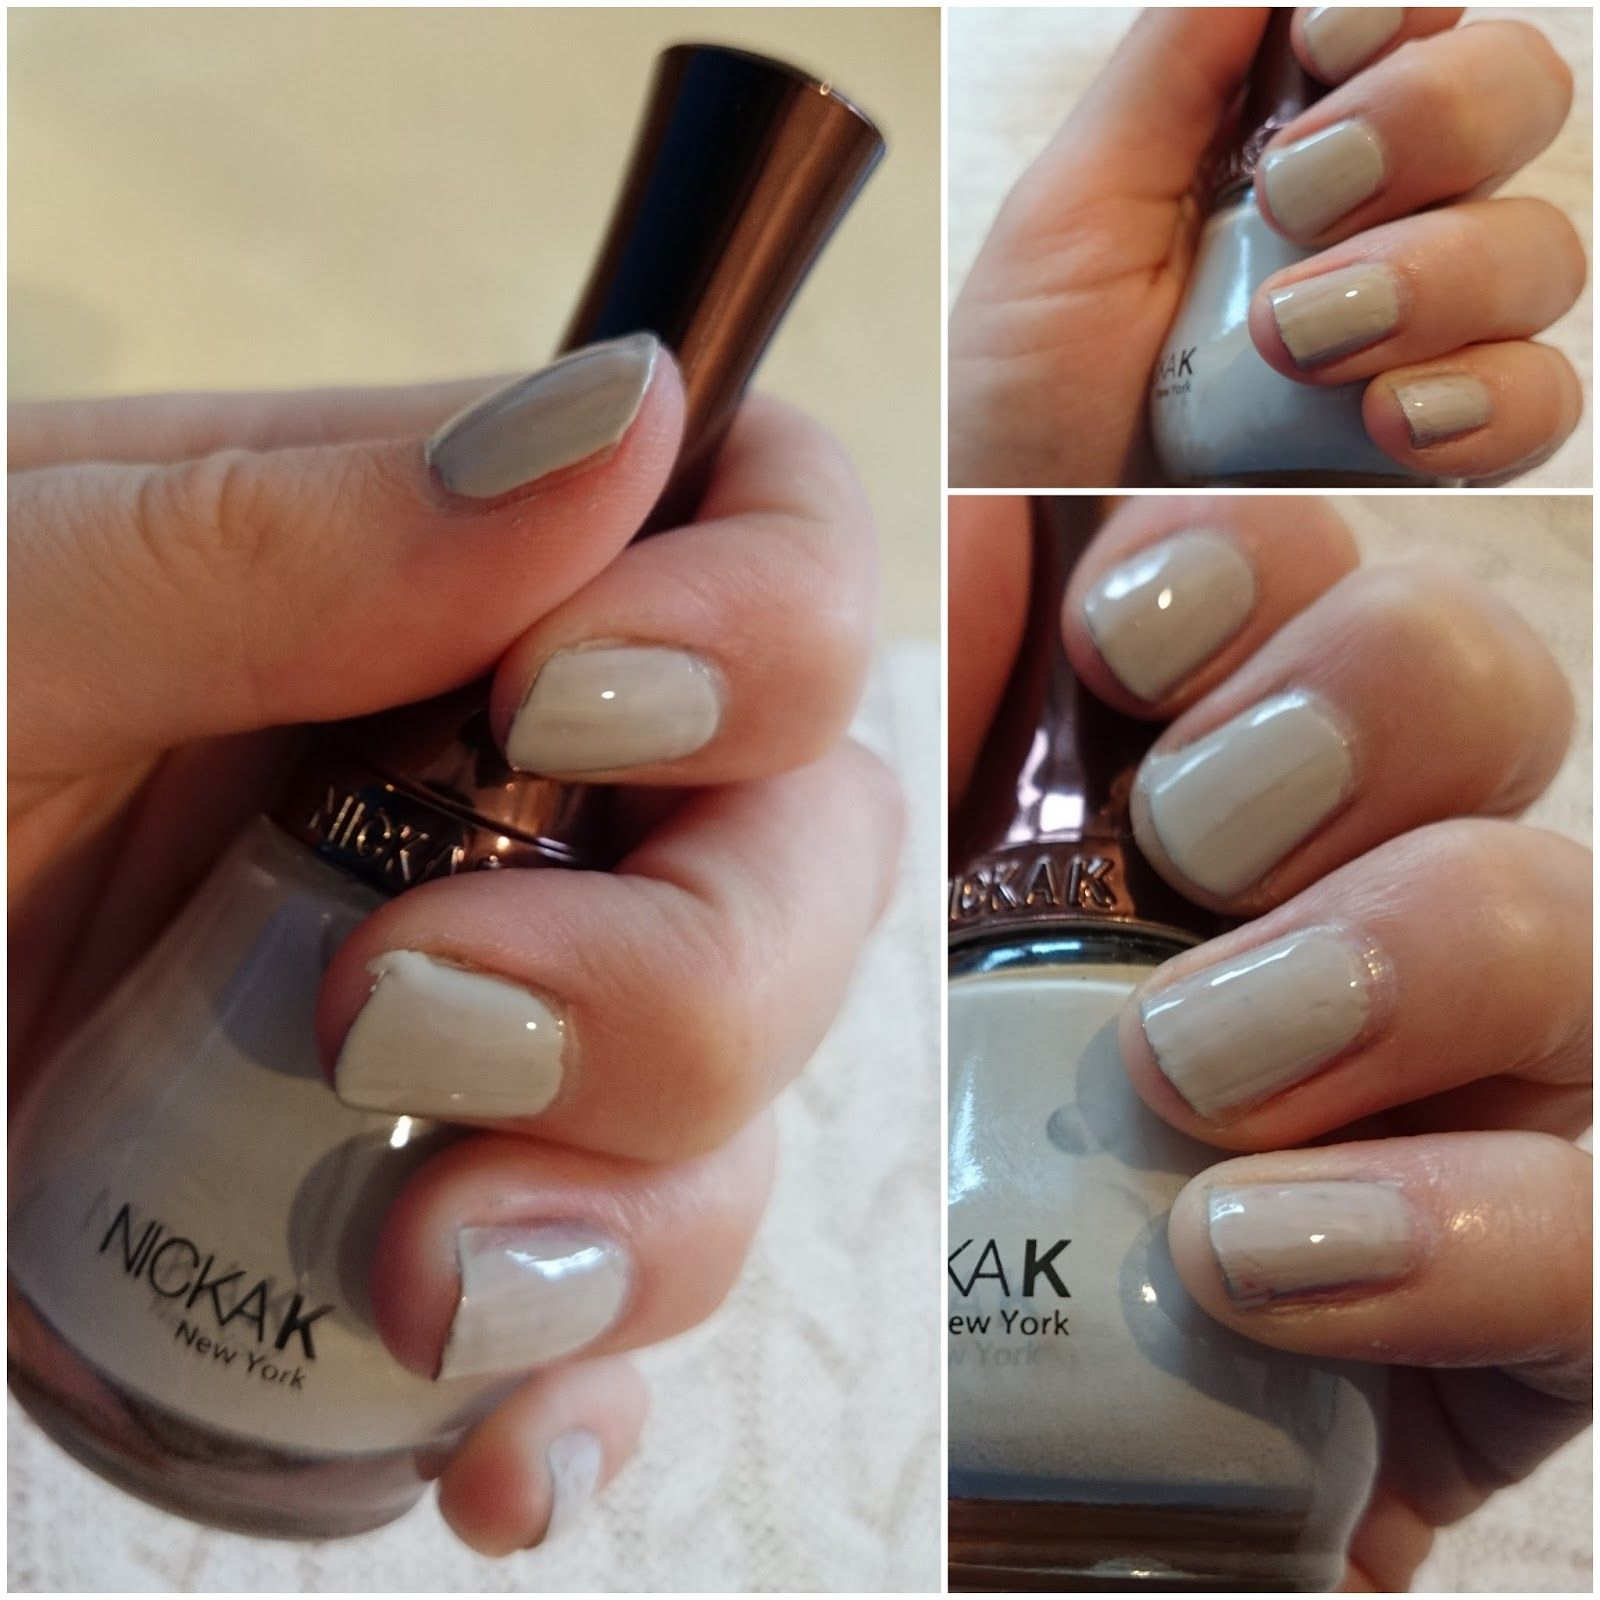 Nicka K New York Nail Polish NY 126 Dove | Beauty Reviews ...